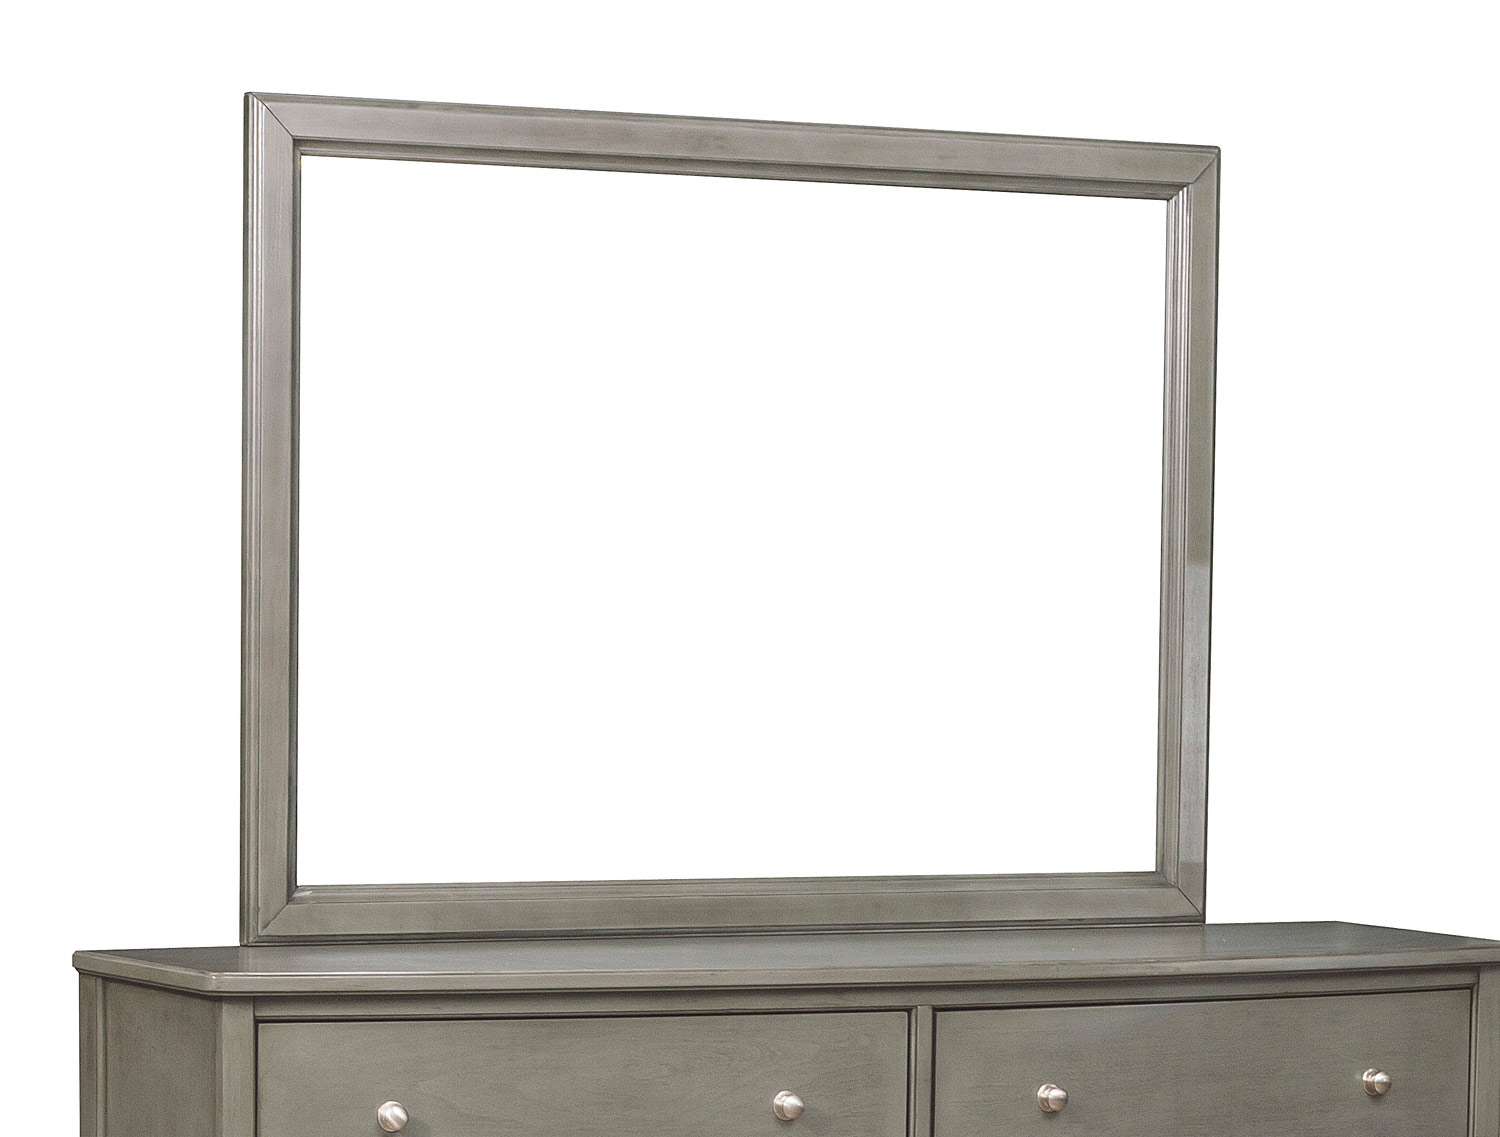 Homelegance Cotterill Mirror - Gray Finish over Birch Veneer